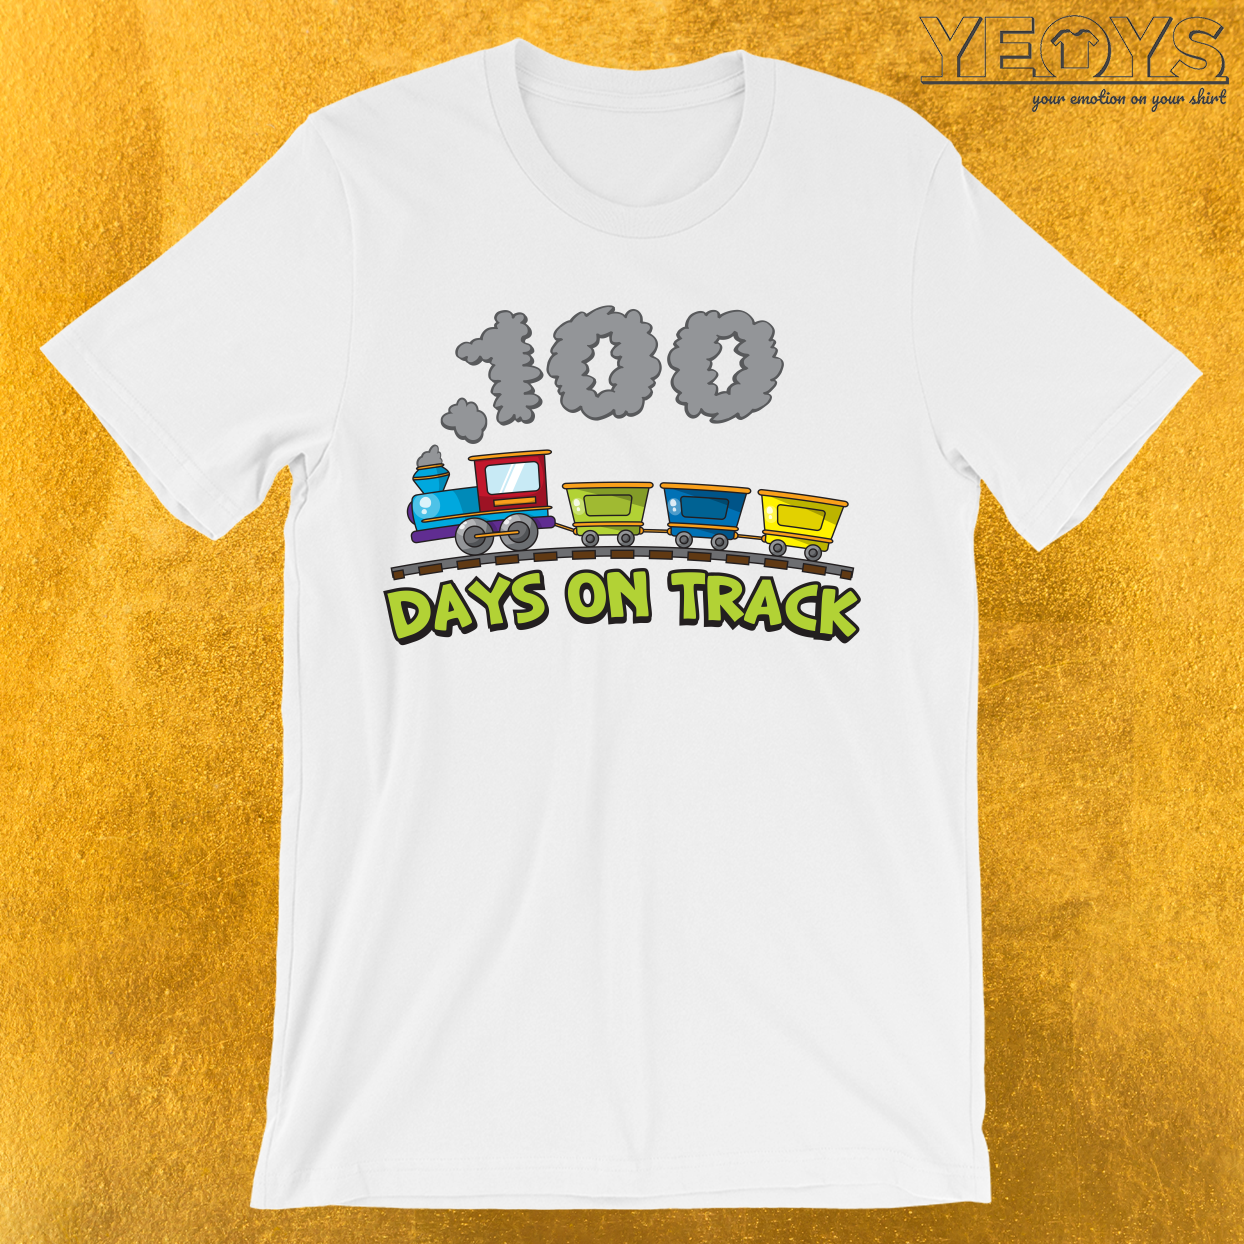 100 Days On Track T-Shirt